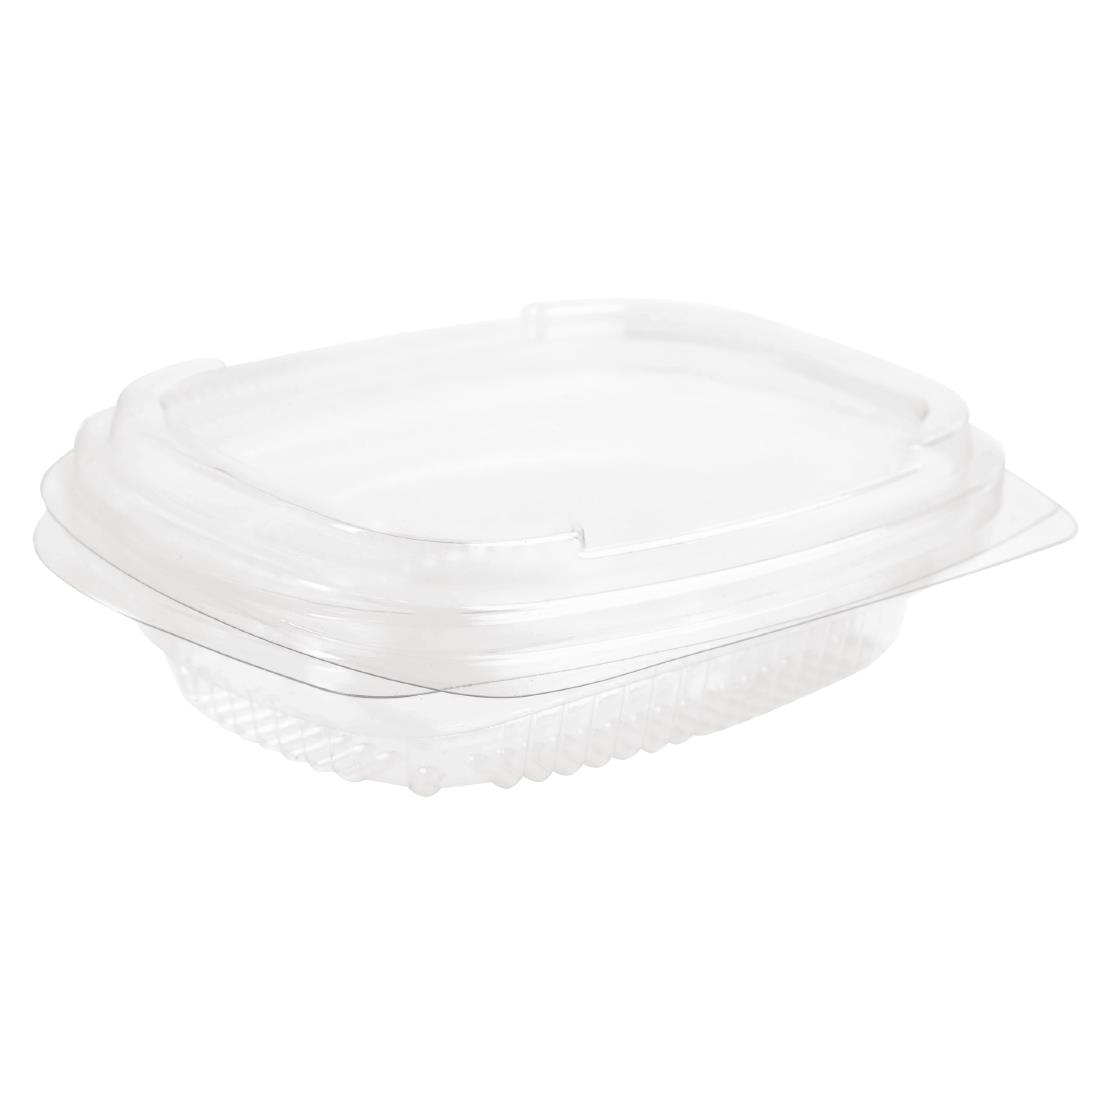 Image of Faerch Fresco Recyclable Deli Containers With Lid 125ml / 4oz (Pack of 600) Pack of 600